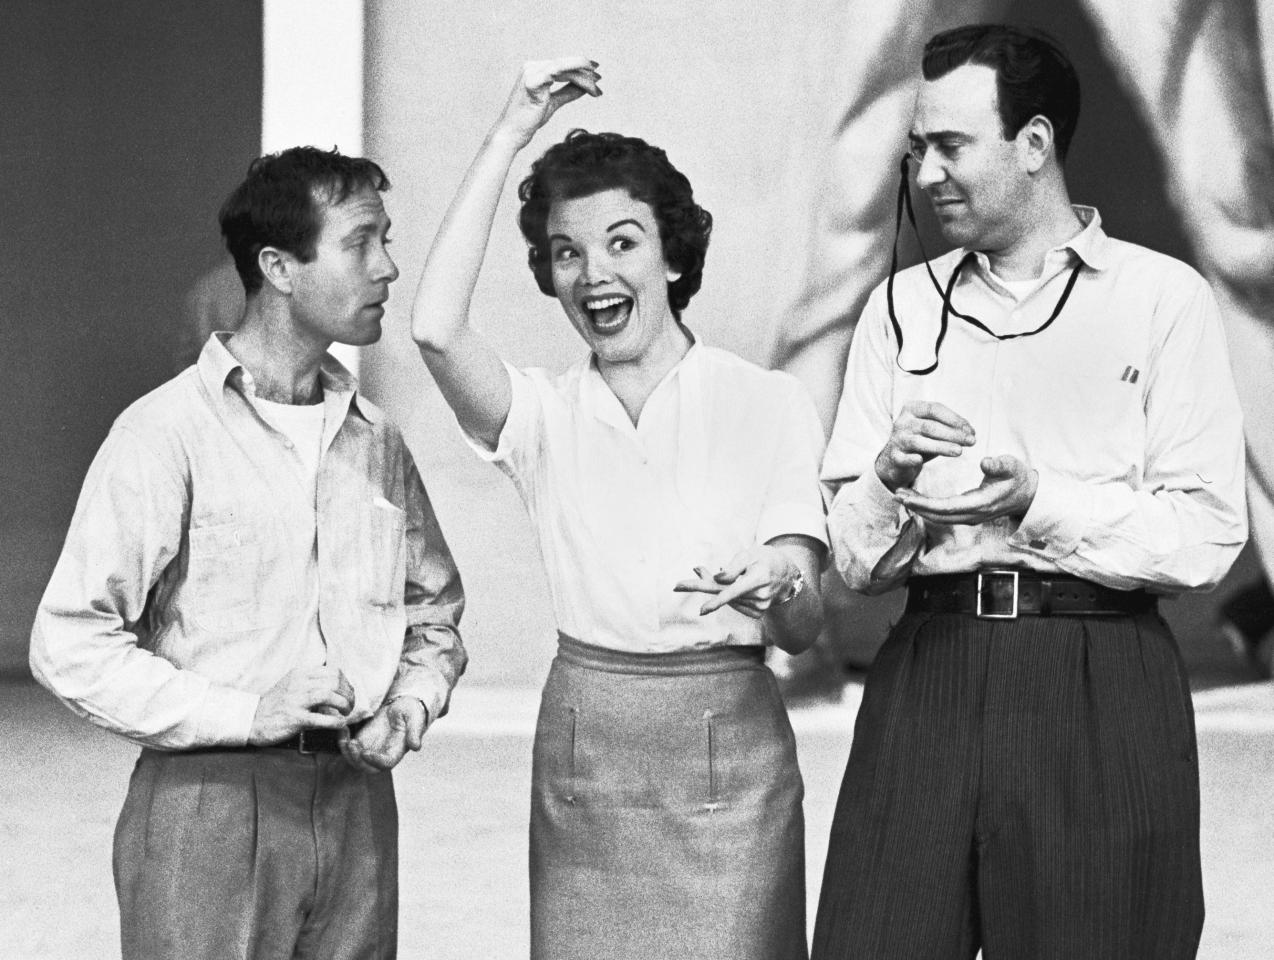 American actors Howard Morris (1919 - 2005) (left), Nanette Fabrey, and Carl Reiner (with monocle) clown around on the set of the comedy sketch show 'Caesar's Hour' (named after host Sid Ceaser), New York, New York, 1955. (Photo by Robert Lerner/Getty Images)